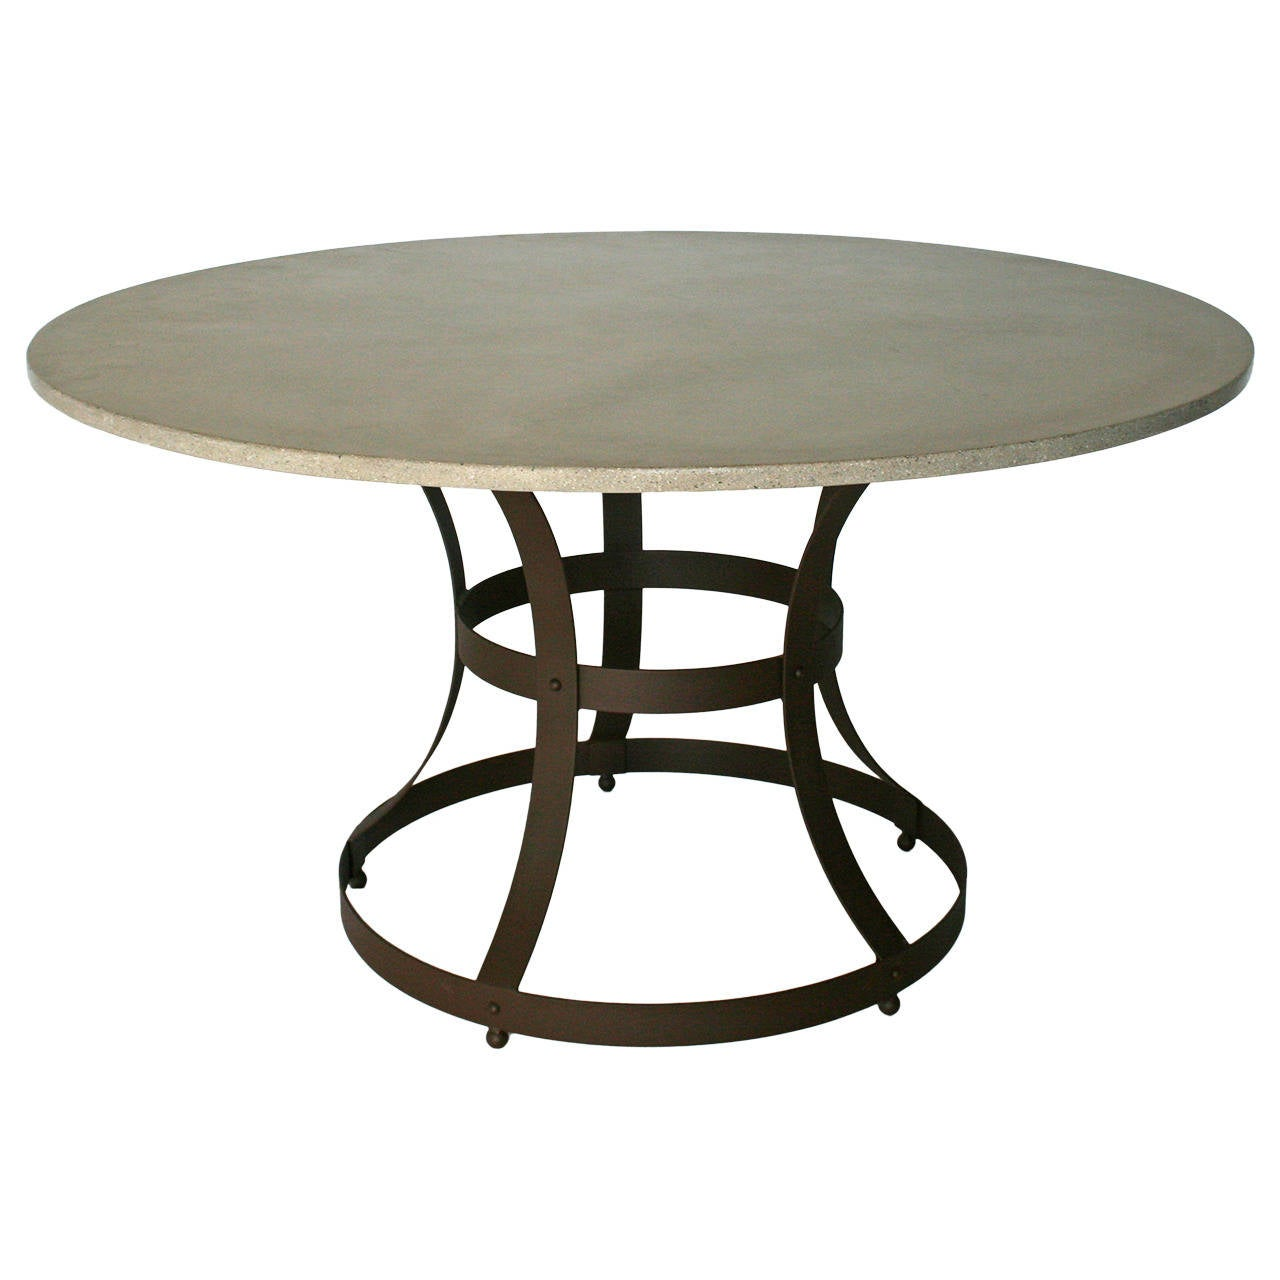 James de Wulf Hourglass Dining Table Concrete and Iron For Sale at 1stdibs